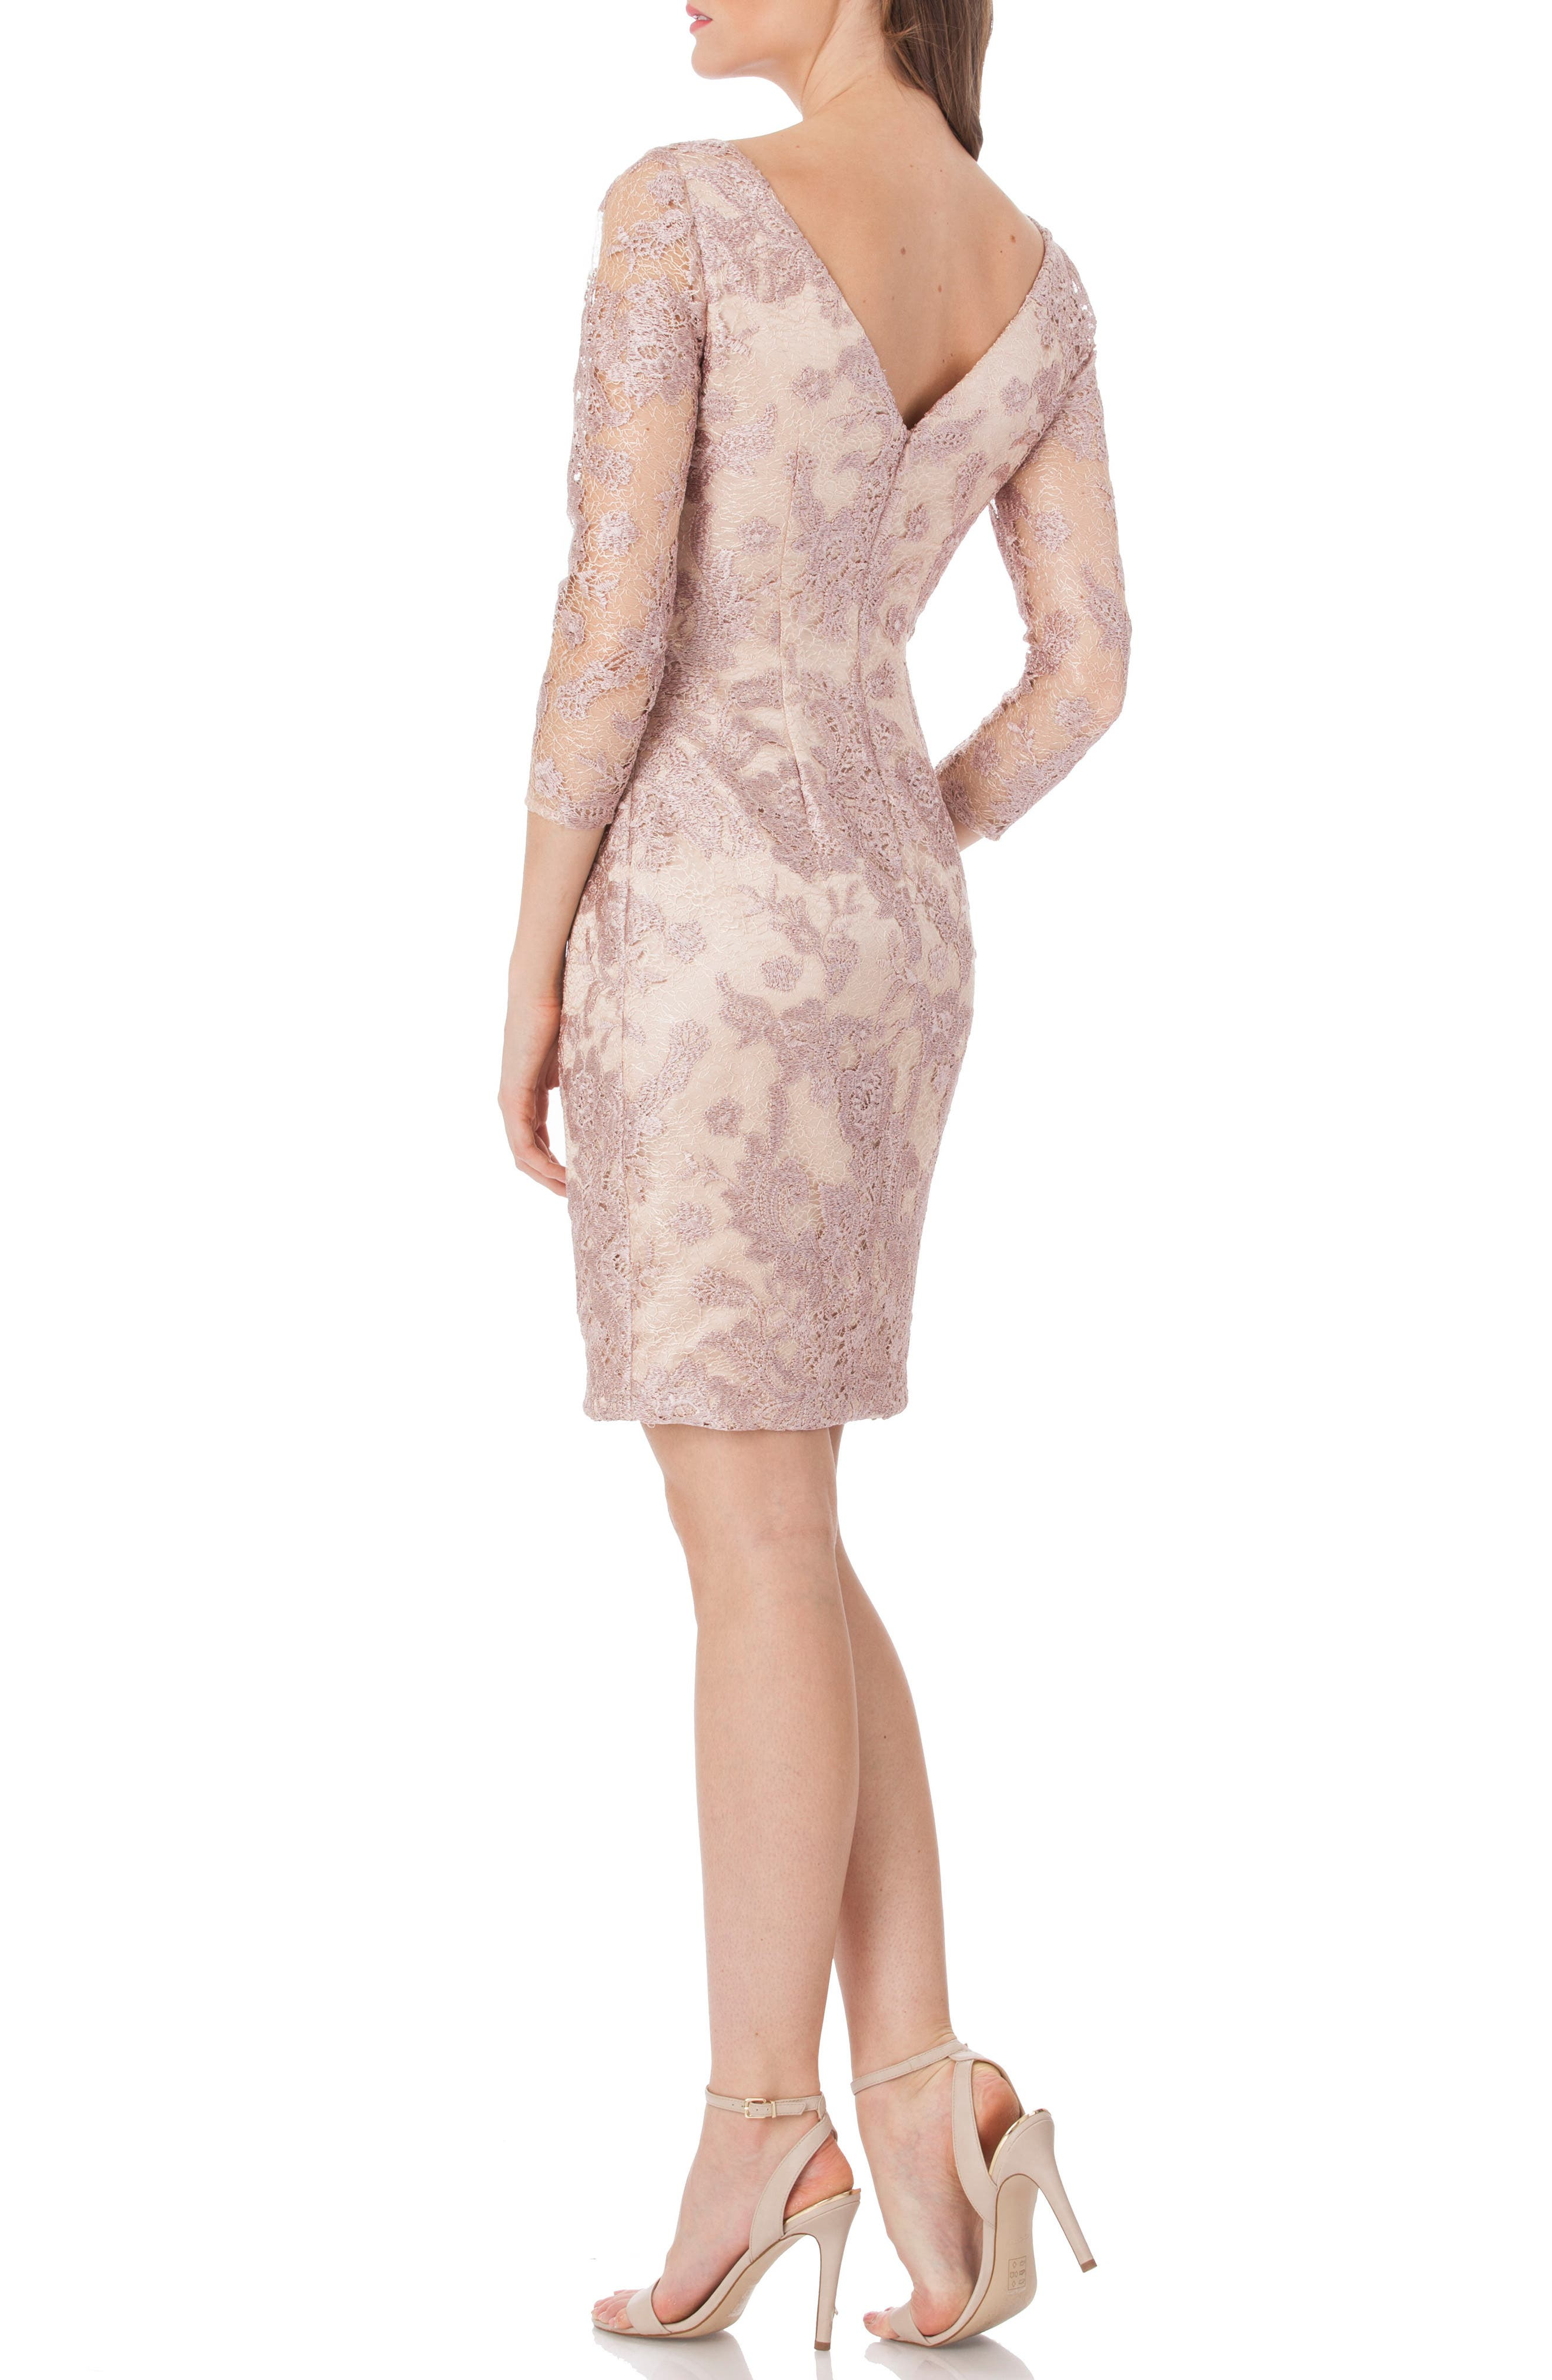 Embroidered Lace Cocktail Dress,                             Alternate thumbnail 2, color,                             LILAC/ PINK